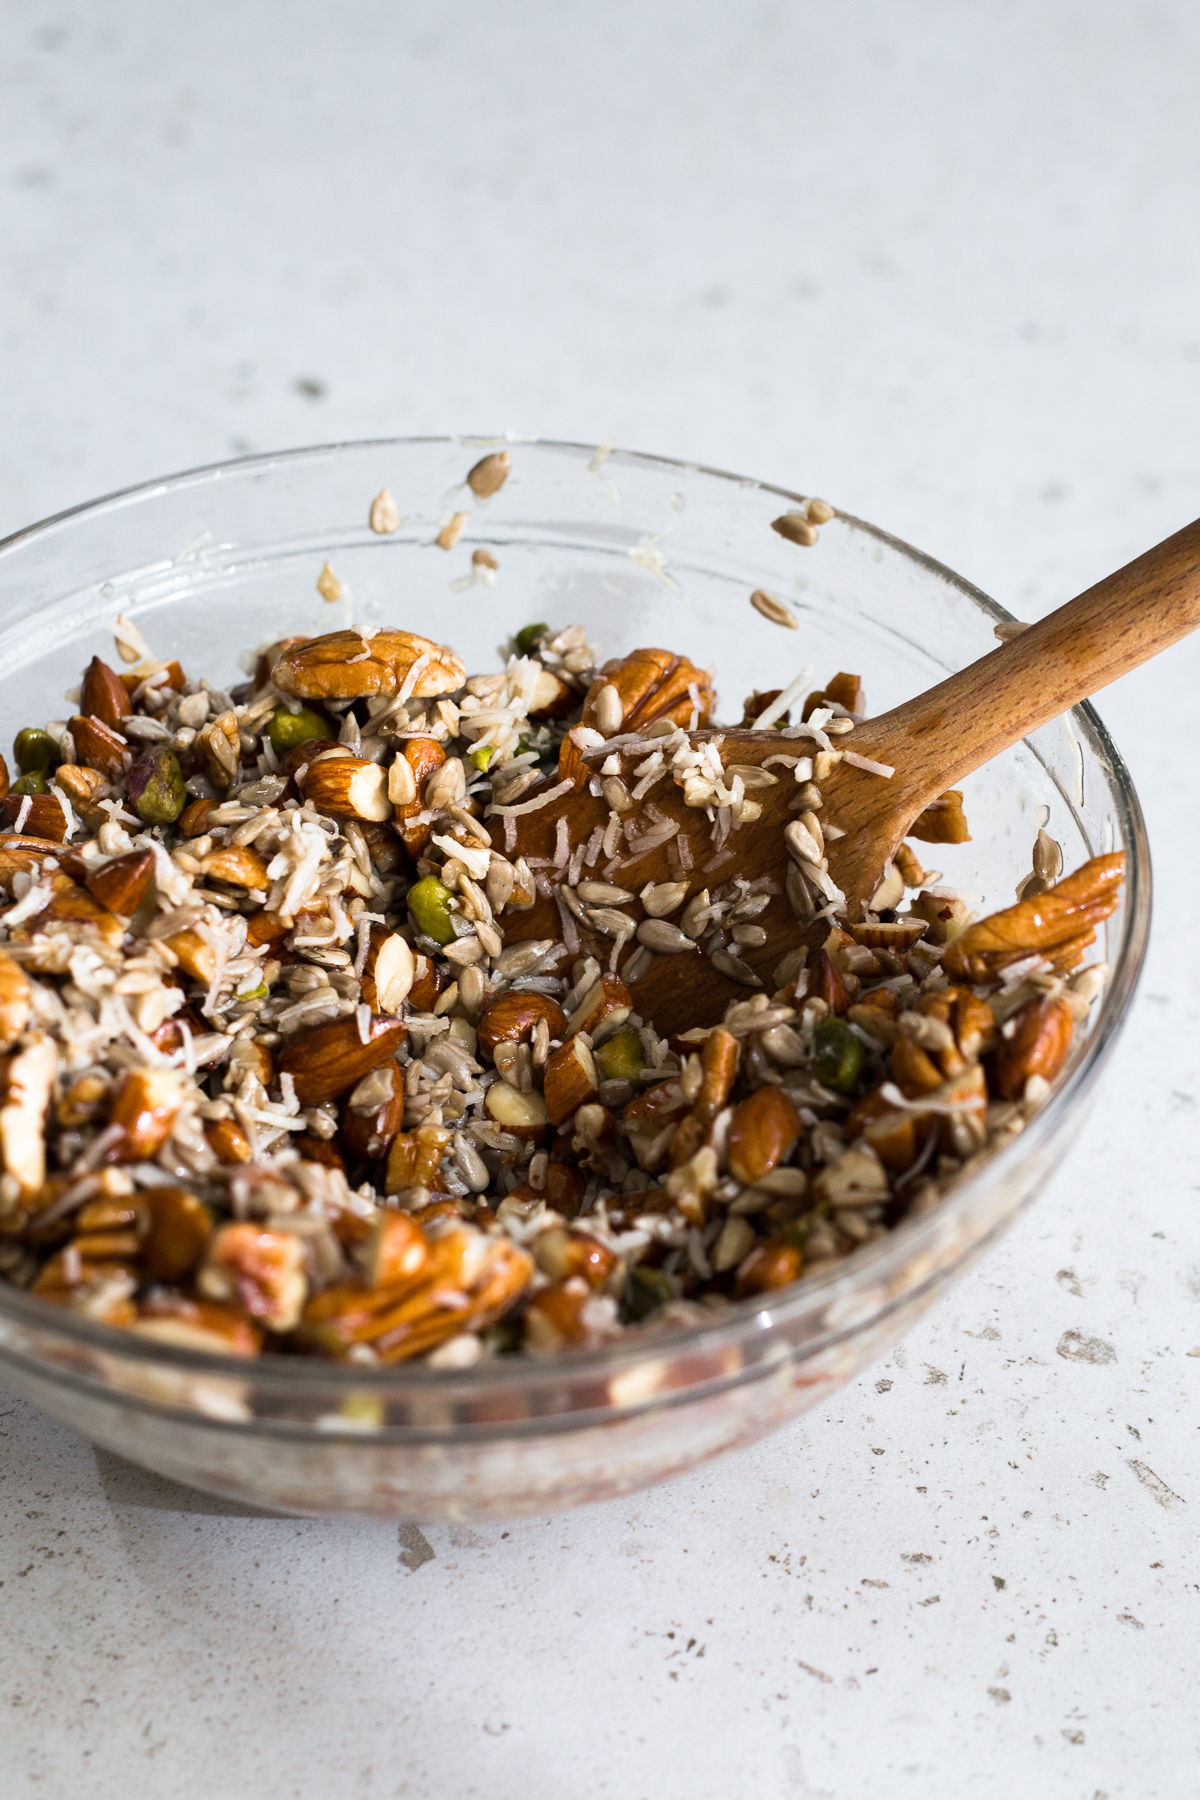 A delicious Grain Free Granola made with Mixed Nuts, Coconut Oil, Vanilla and Orange Zest. Gluten Free, Dairy Free and ready in under 1 hour. #granola #breakfast #cereal #glutenfree #easy #pecan #pistachio #almonds #apricot #cranberry #healthy #sunflowerseeds #breakfastrecipes #brunch